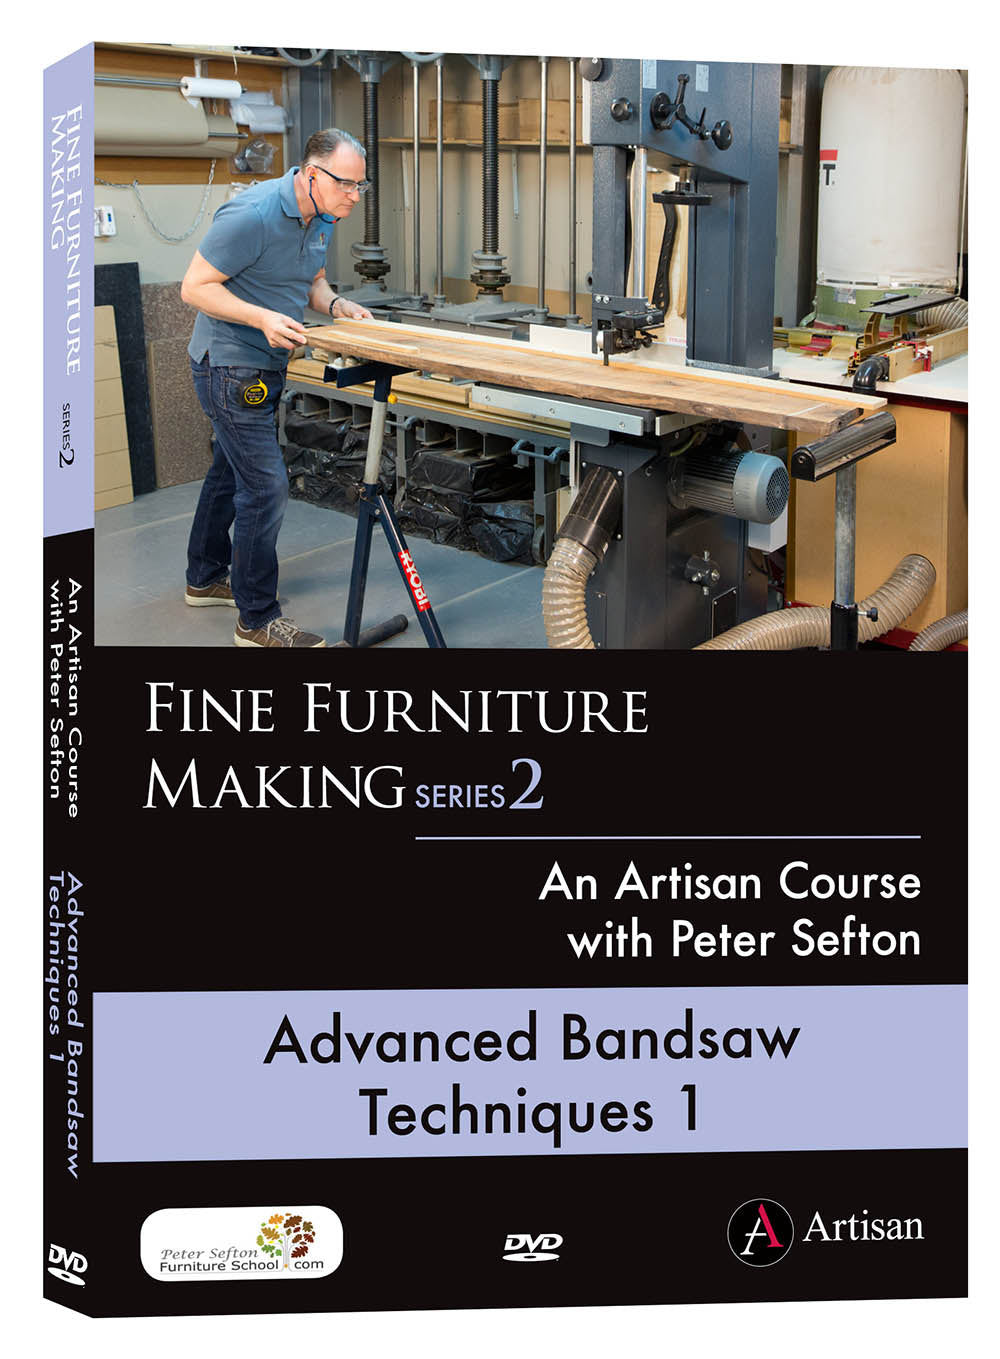 Advanced Bandsaw Techniques 1 - Peter Sefton (DVD)